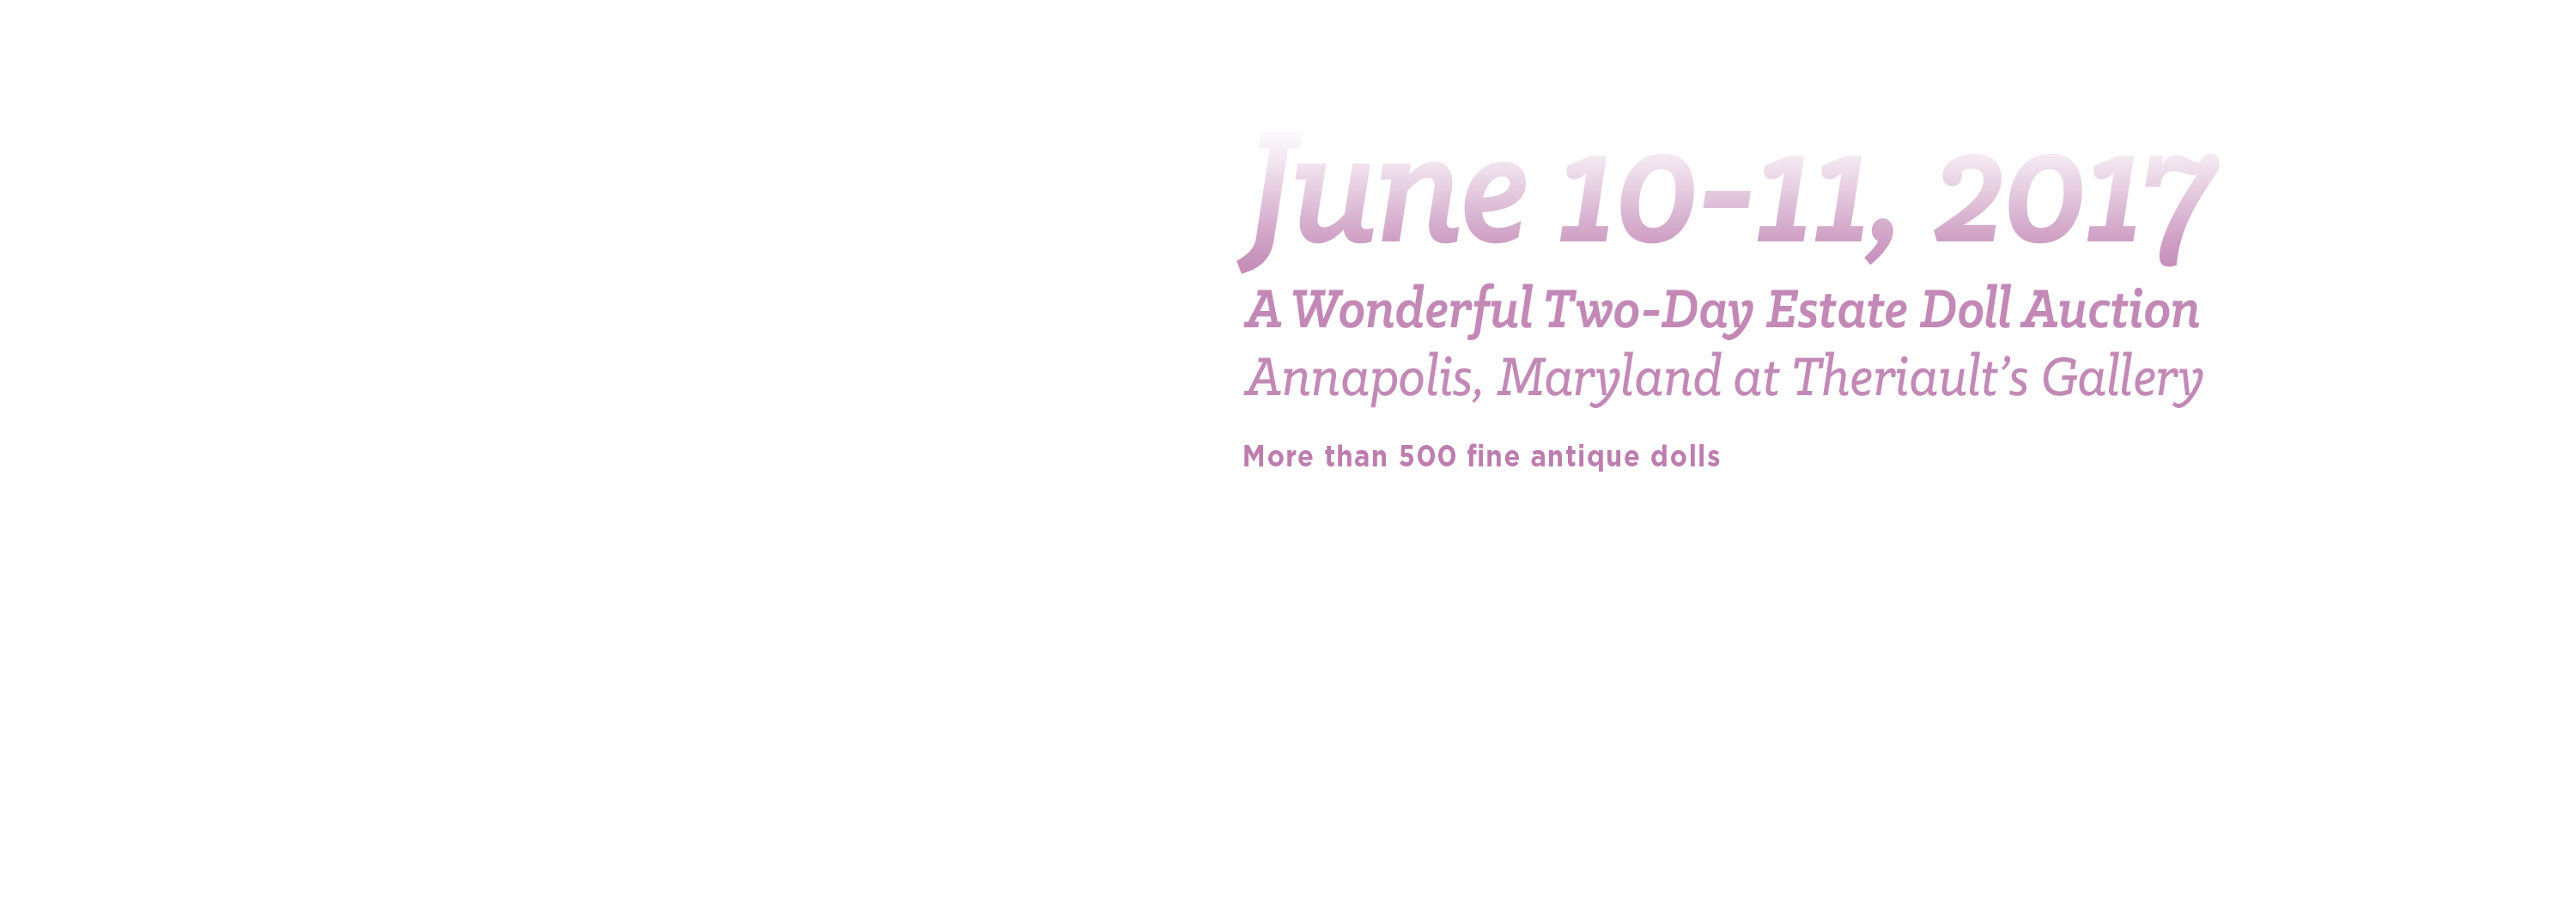 marquis-06-10-17-slider2.png